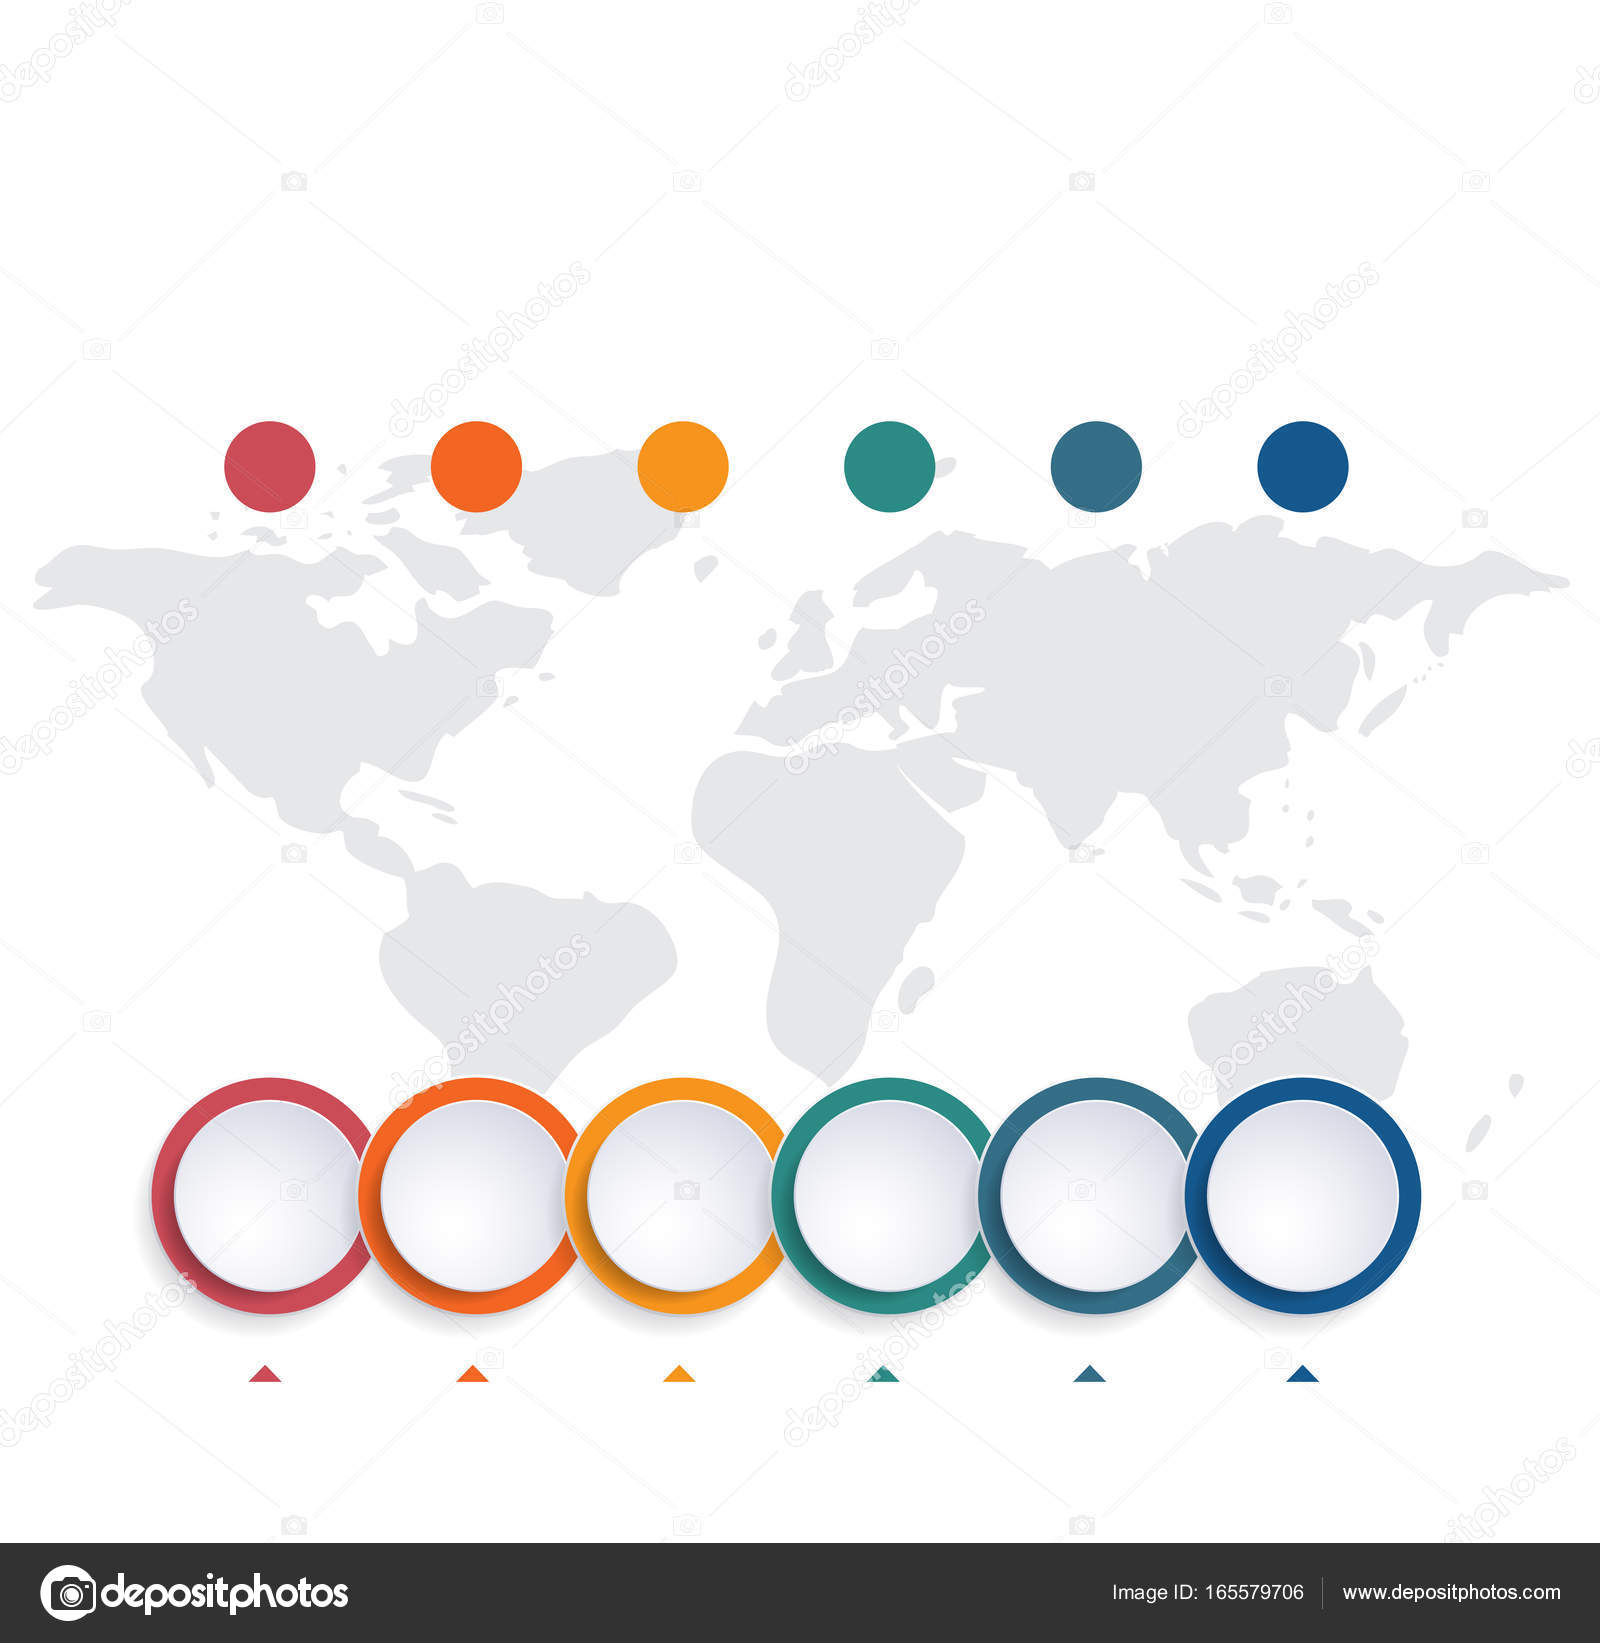 Template infographic color bubble chart 6 positions stock photo template infographic color bubble chart 6 positions stock photo ccuart Images